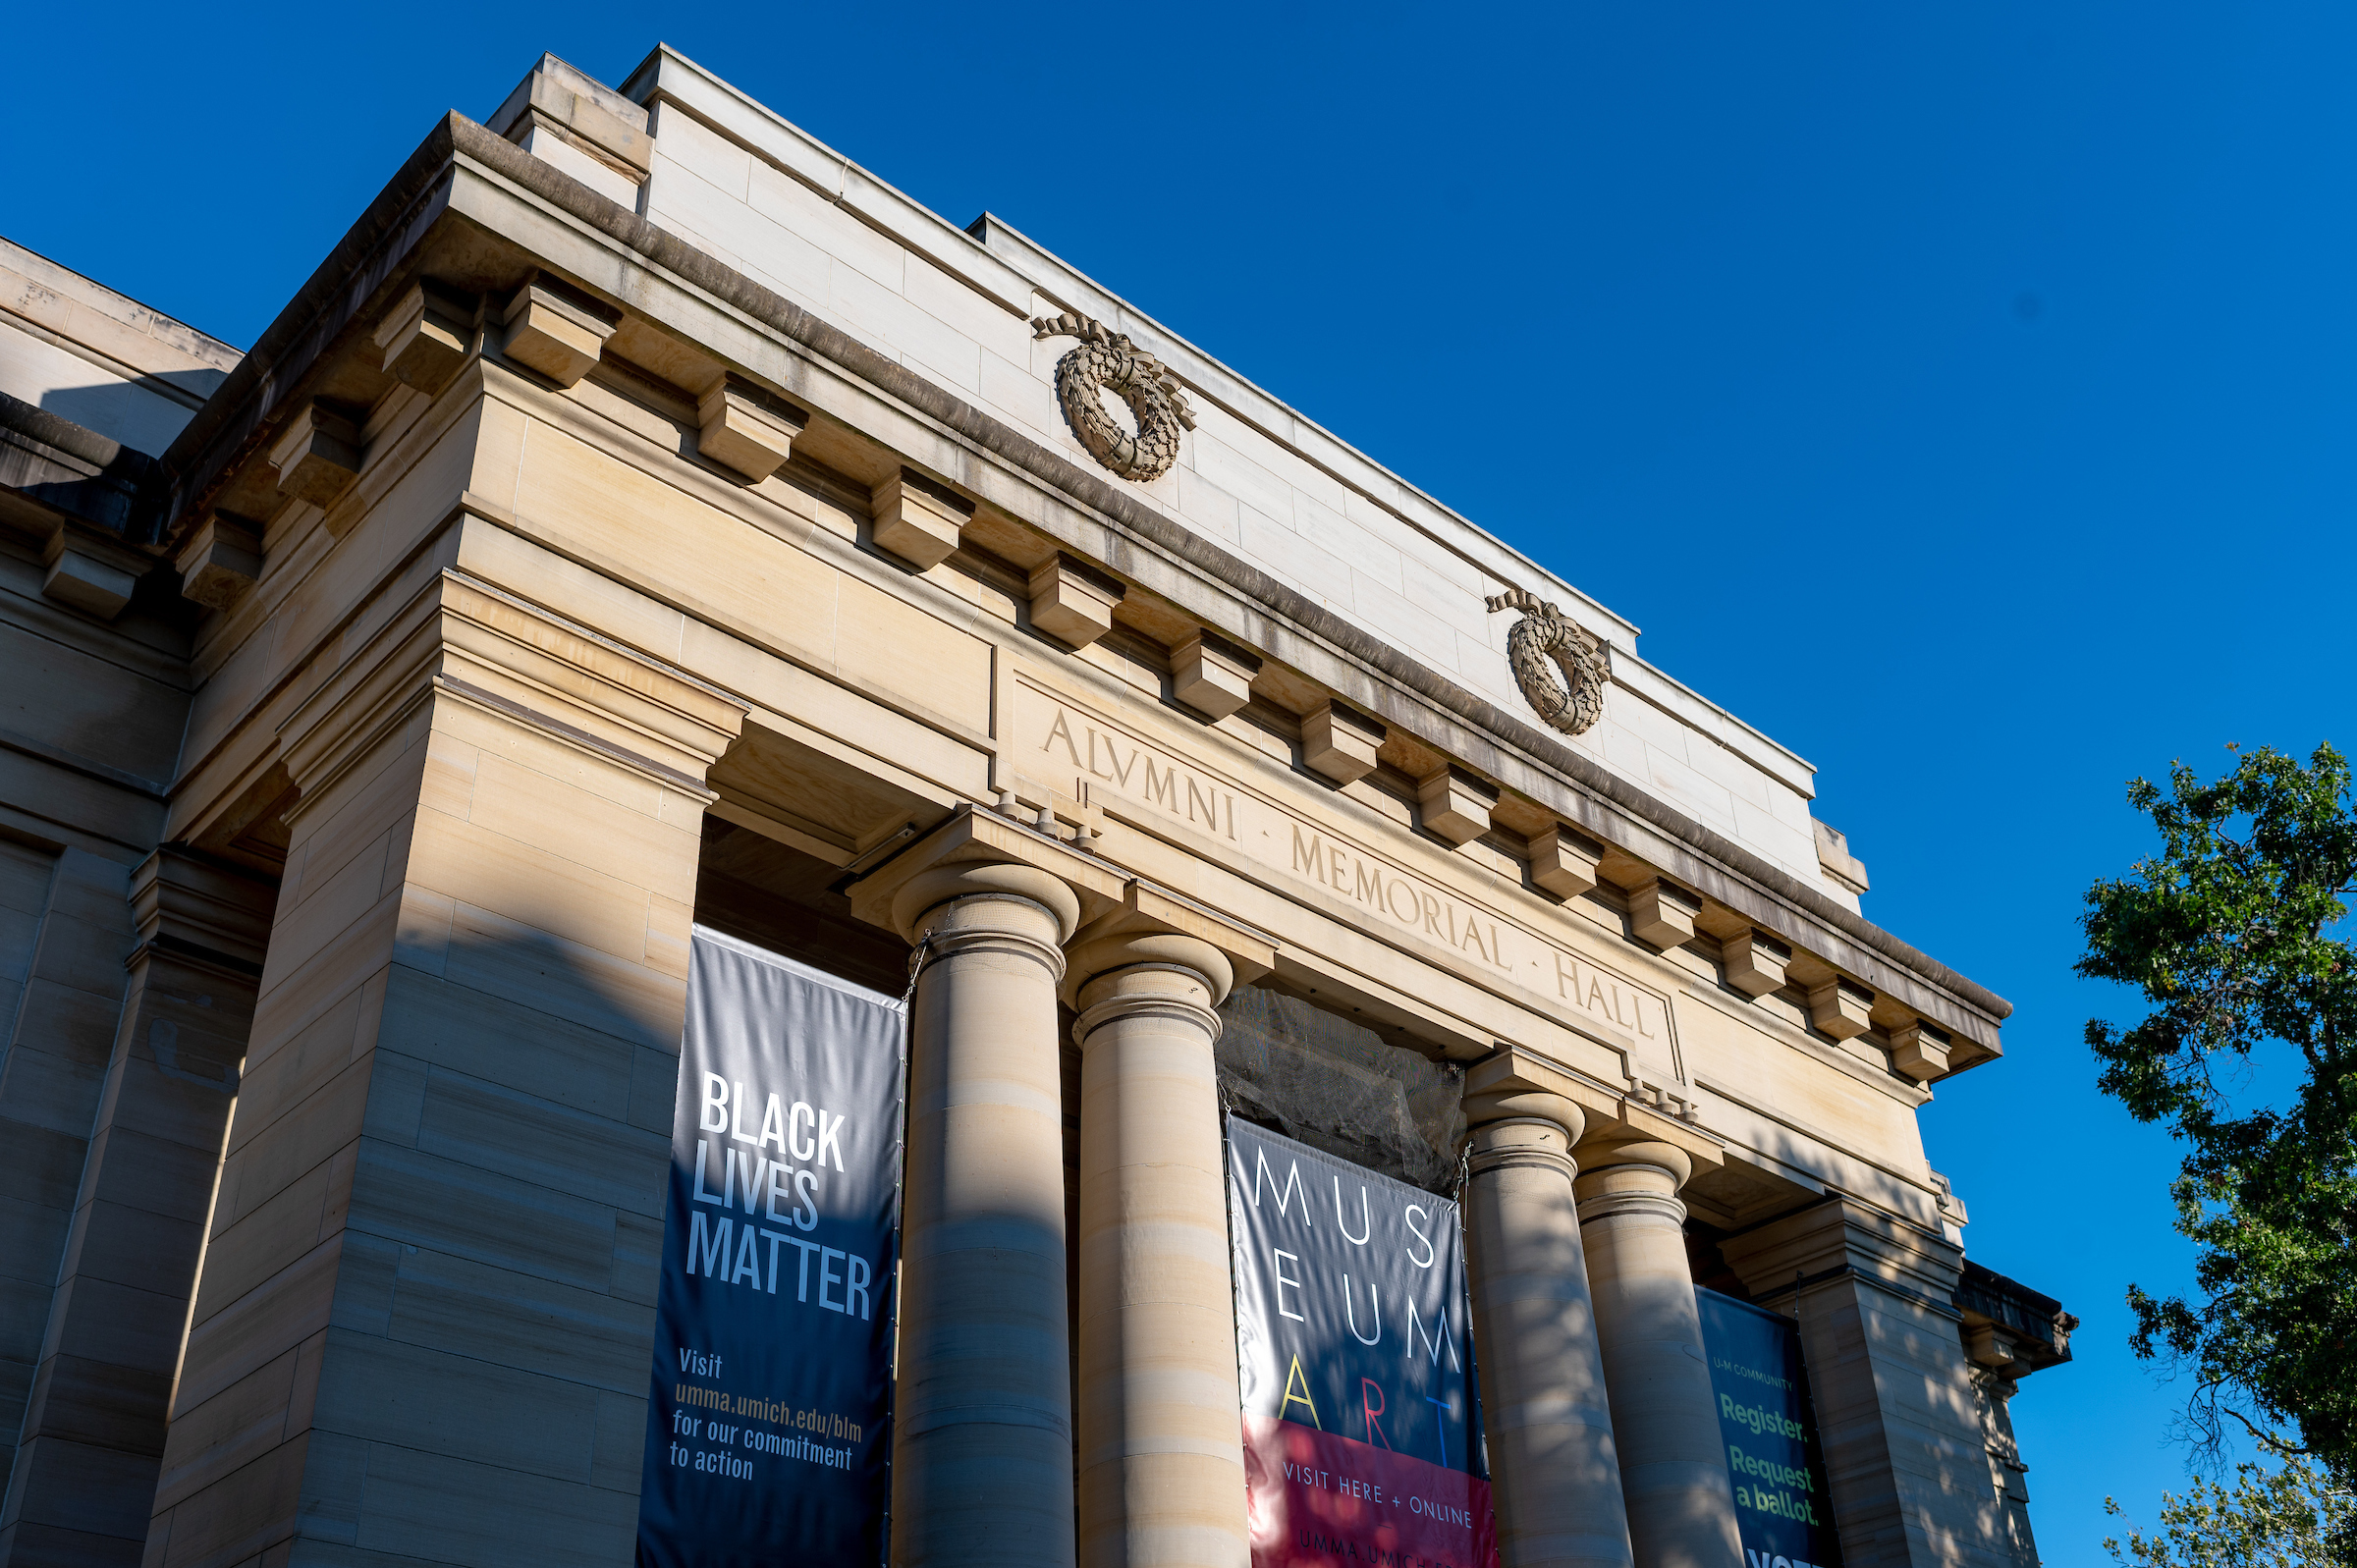 As part of a commitment to anti-racist actions during thr 2020-21 year, University of Michigan Museum of Art installed a Black Lives Banner at their Alumni Memorial Hall entrance. Image credit: Eric Bronson/Michigan Photography.